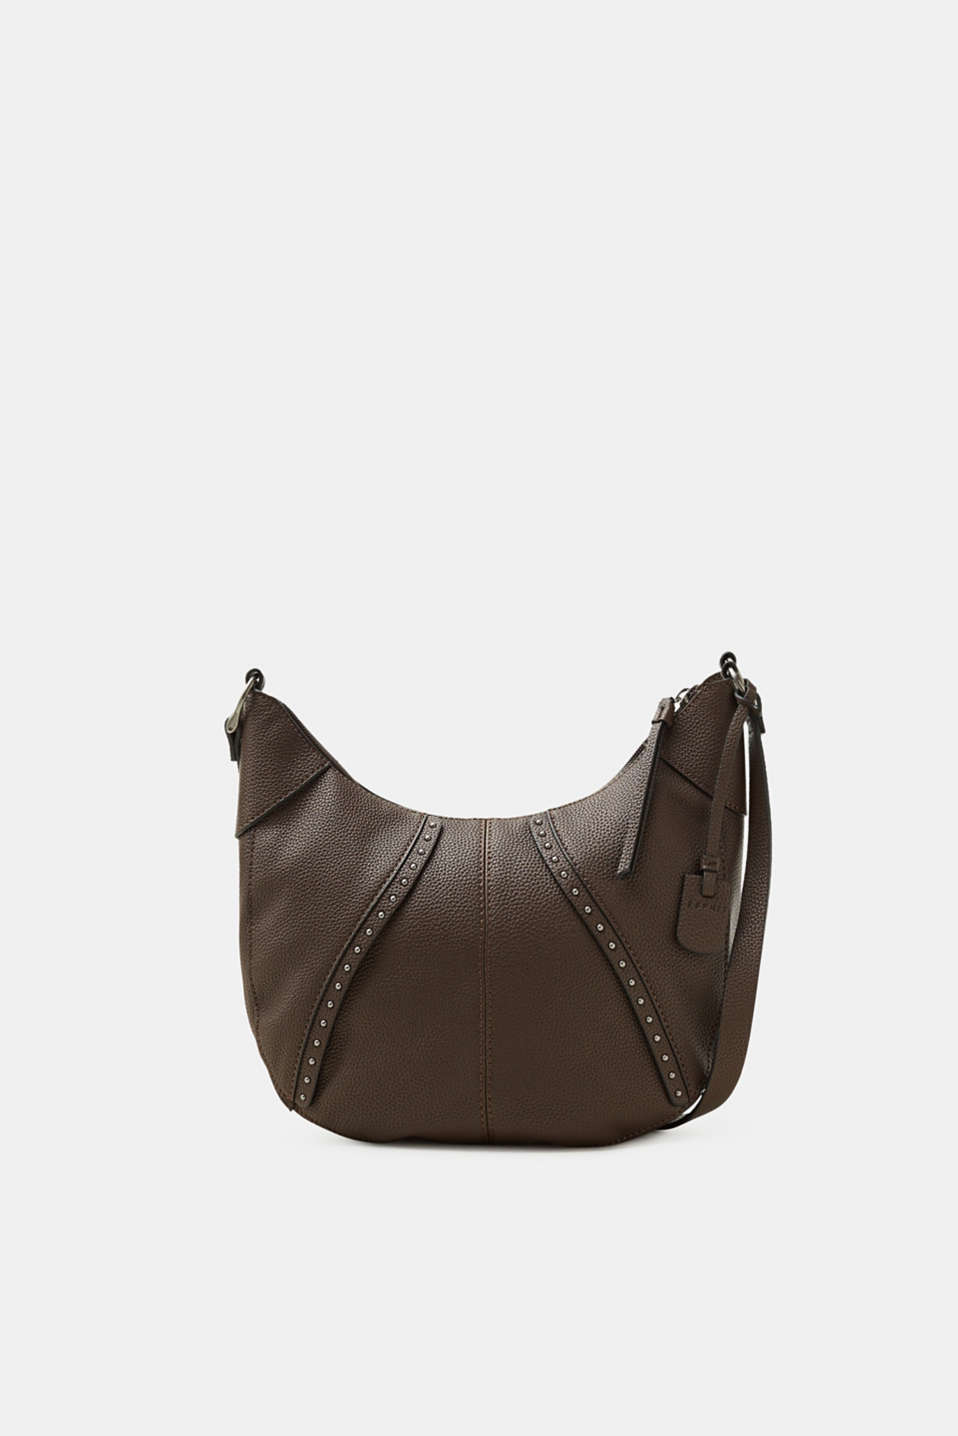 Esprit - Shoulder bag with studs, in faux leather